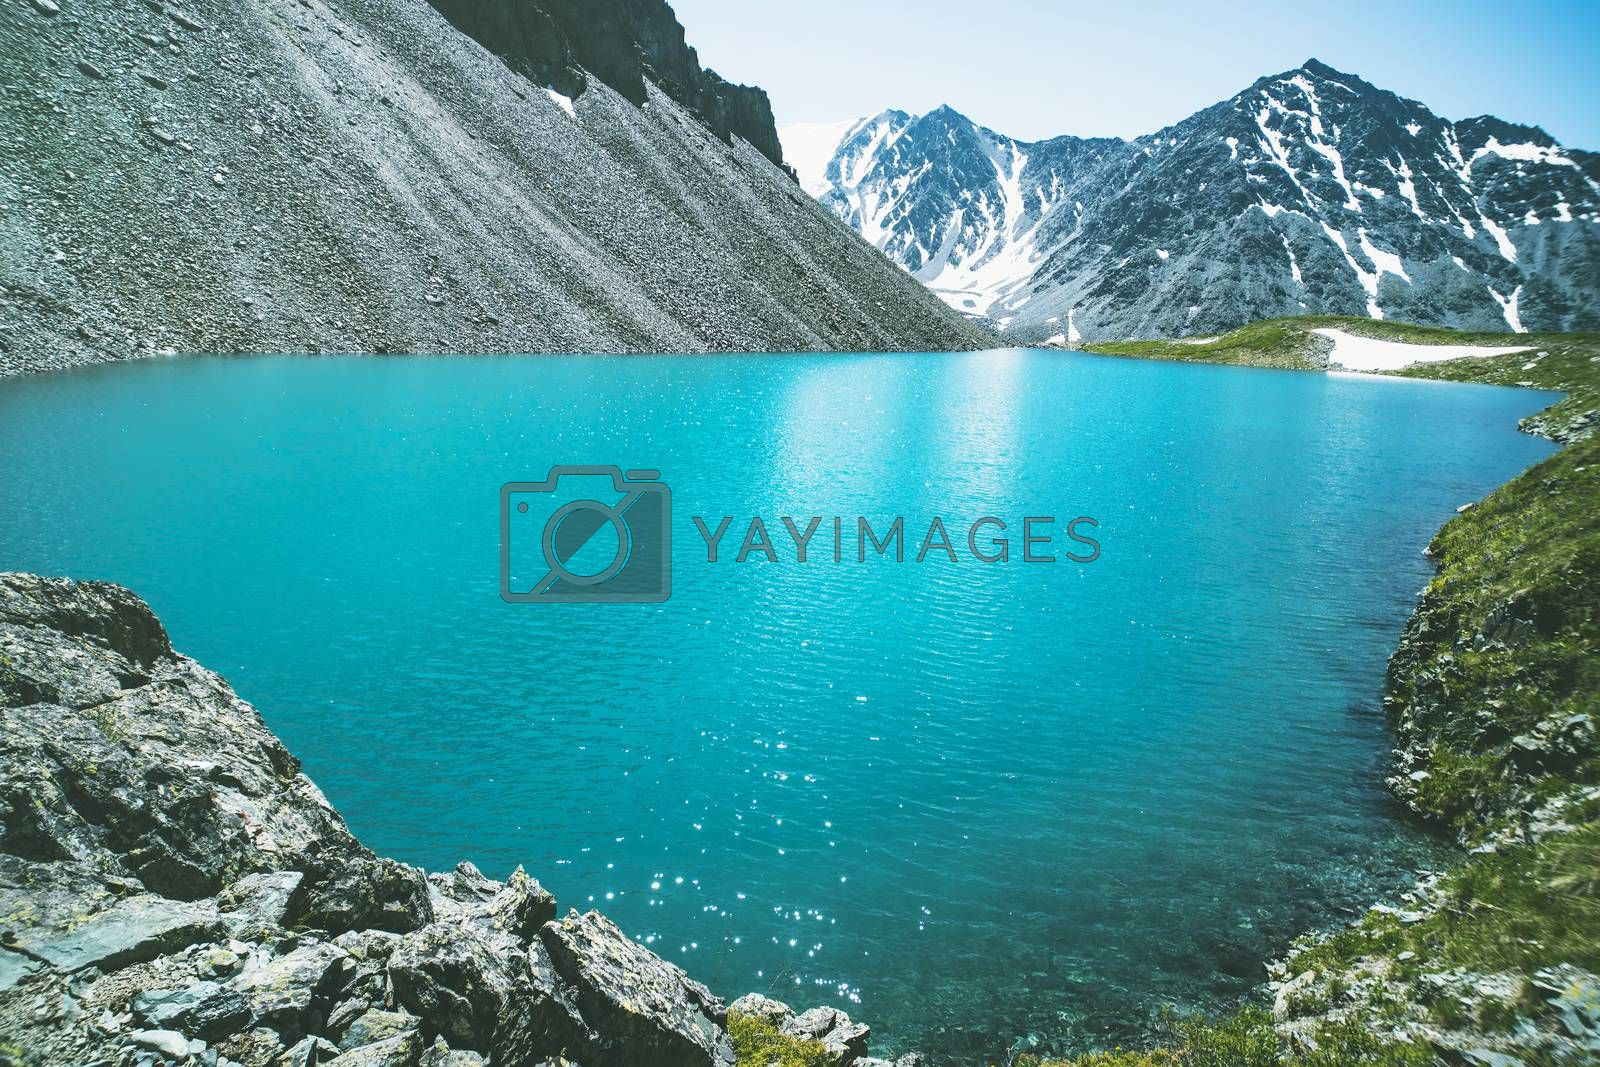 Royalty free image of Beautiful mountain lake with turquoise clear water in the Altai Republic Siberia Russia. Pure blue water in a deep lake surrounded by mountains by diy13